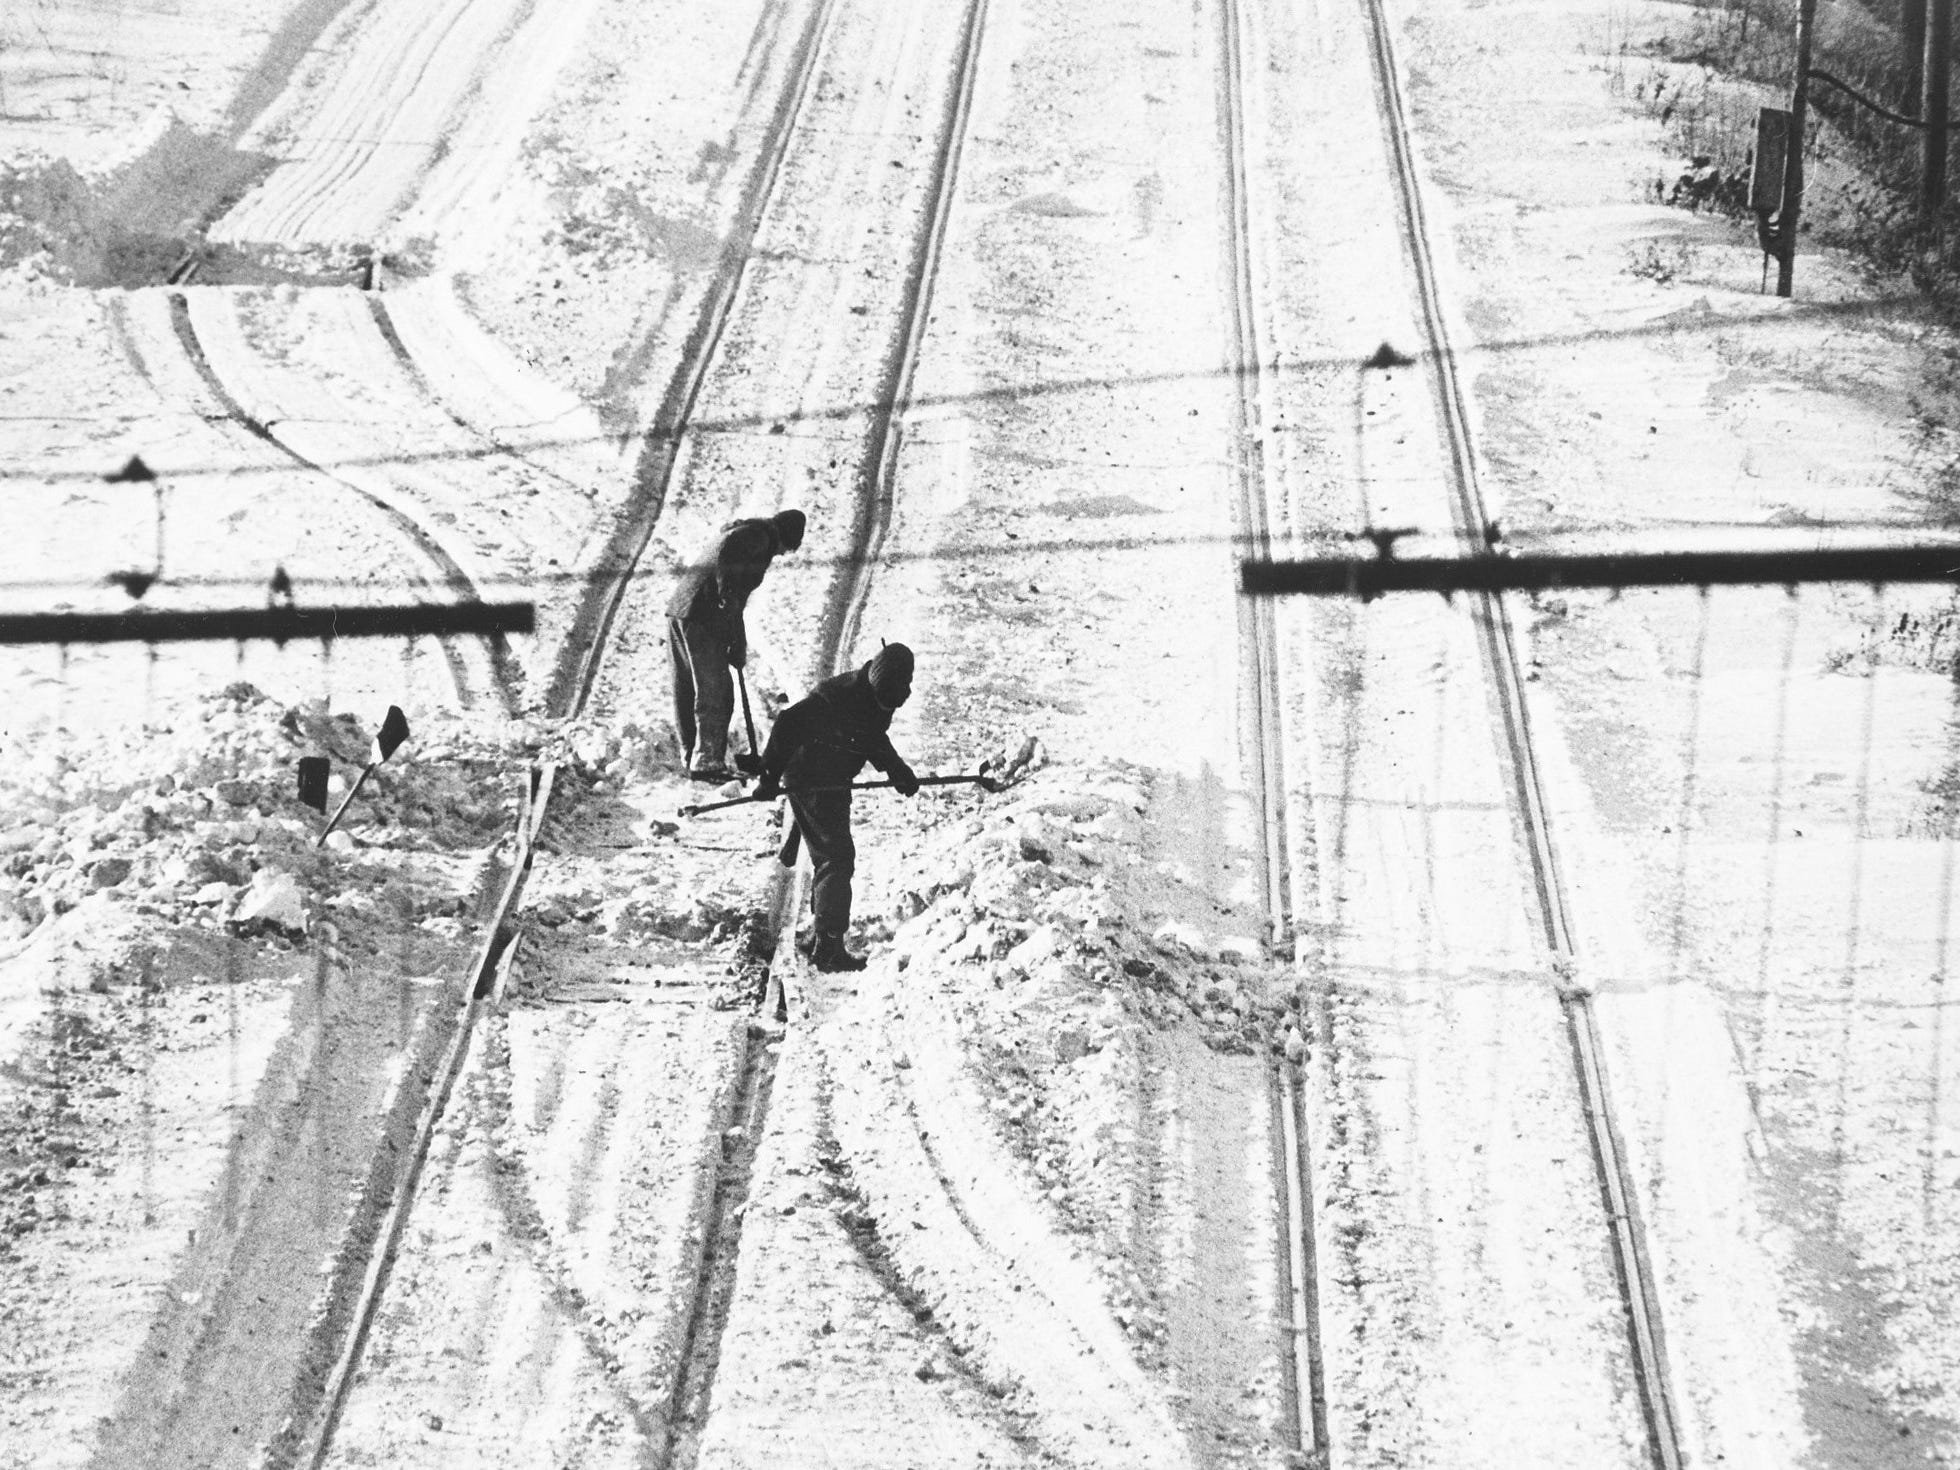 Railroad crews struggle to clear snow from rail switches around Milwaukee on Jan. 25, 1979. Switches frozen and buried under the three major snowstorms that hit MIlwaukee that month made it difficult for trains to get to the city - and to deliver materials needed by the city's major manufacturers, some of whom began laying off workers as a result. This photo was published in the Jan. 26, 1979, Milwaukee Journal.